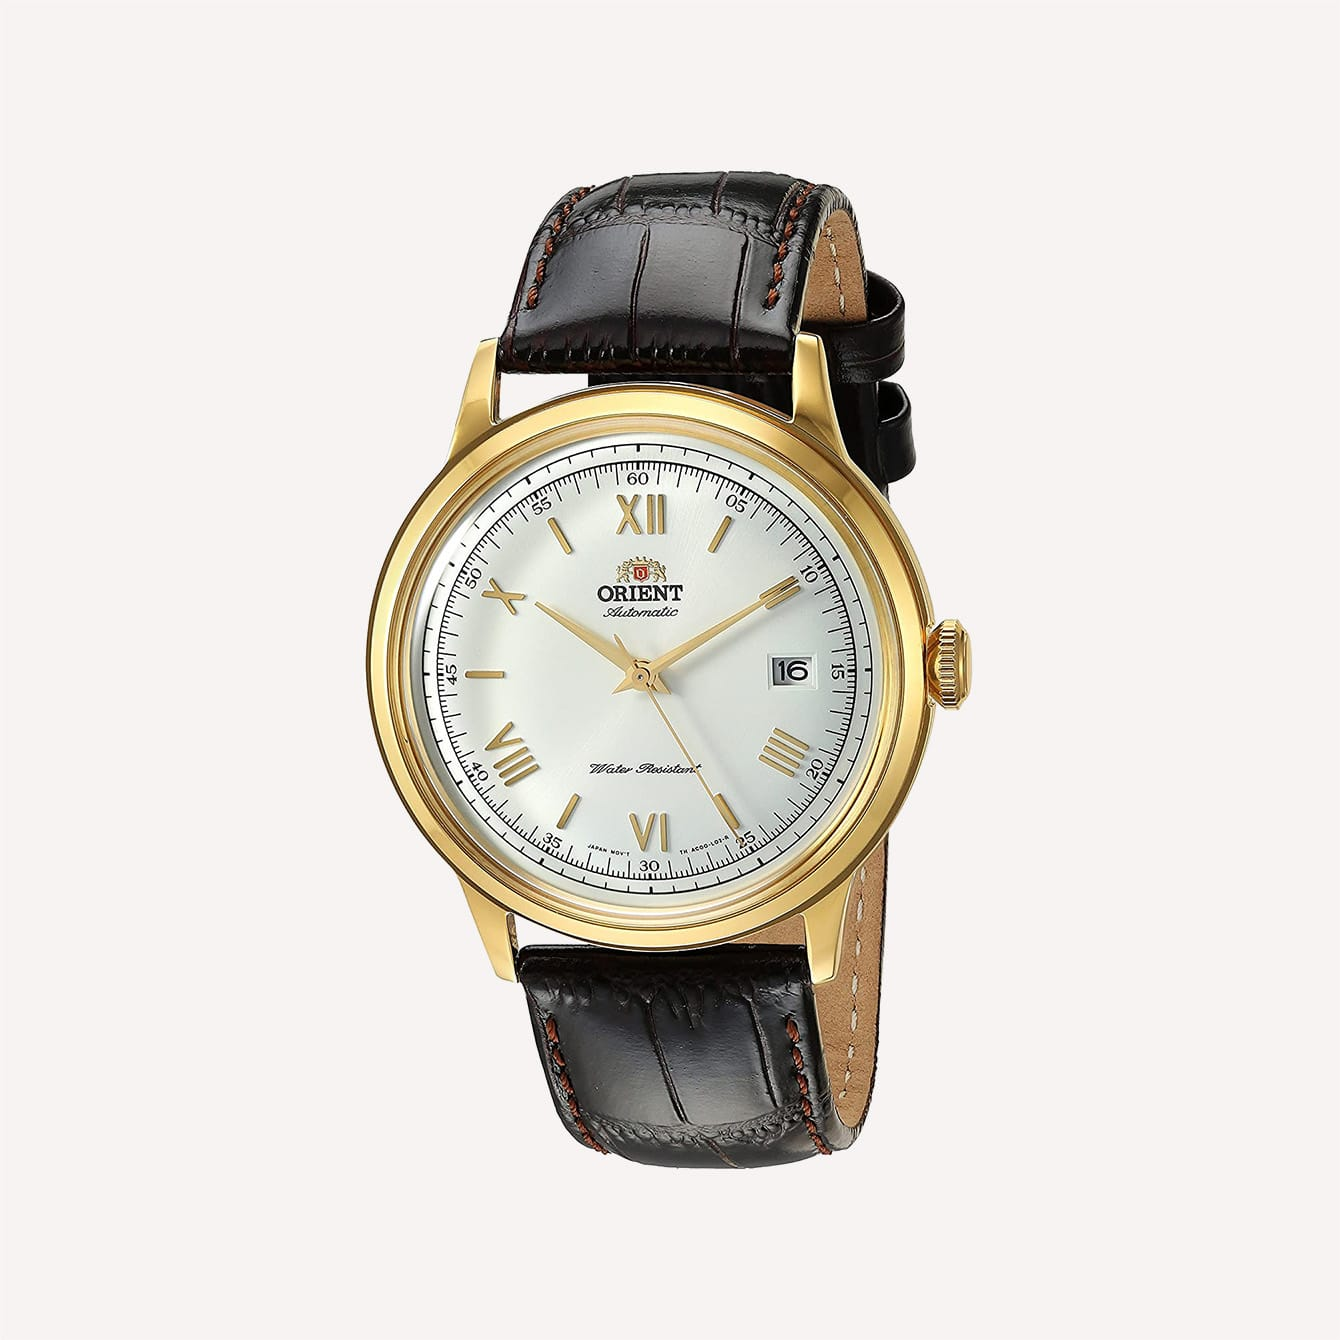 ORIENT MENS BAMBINO AUTOMATIC STAINLESS DRESS WATCH gold